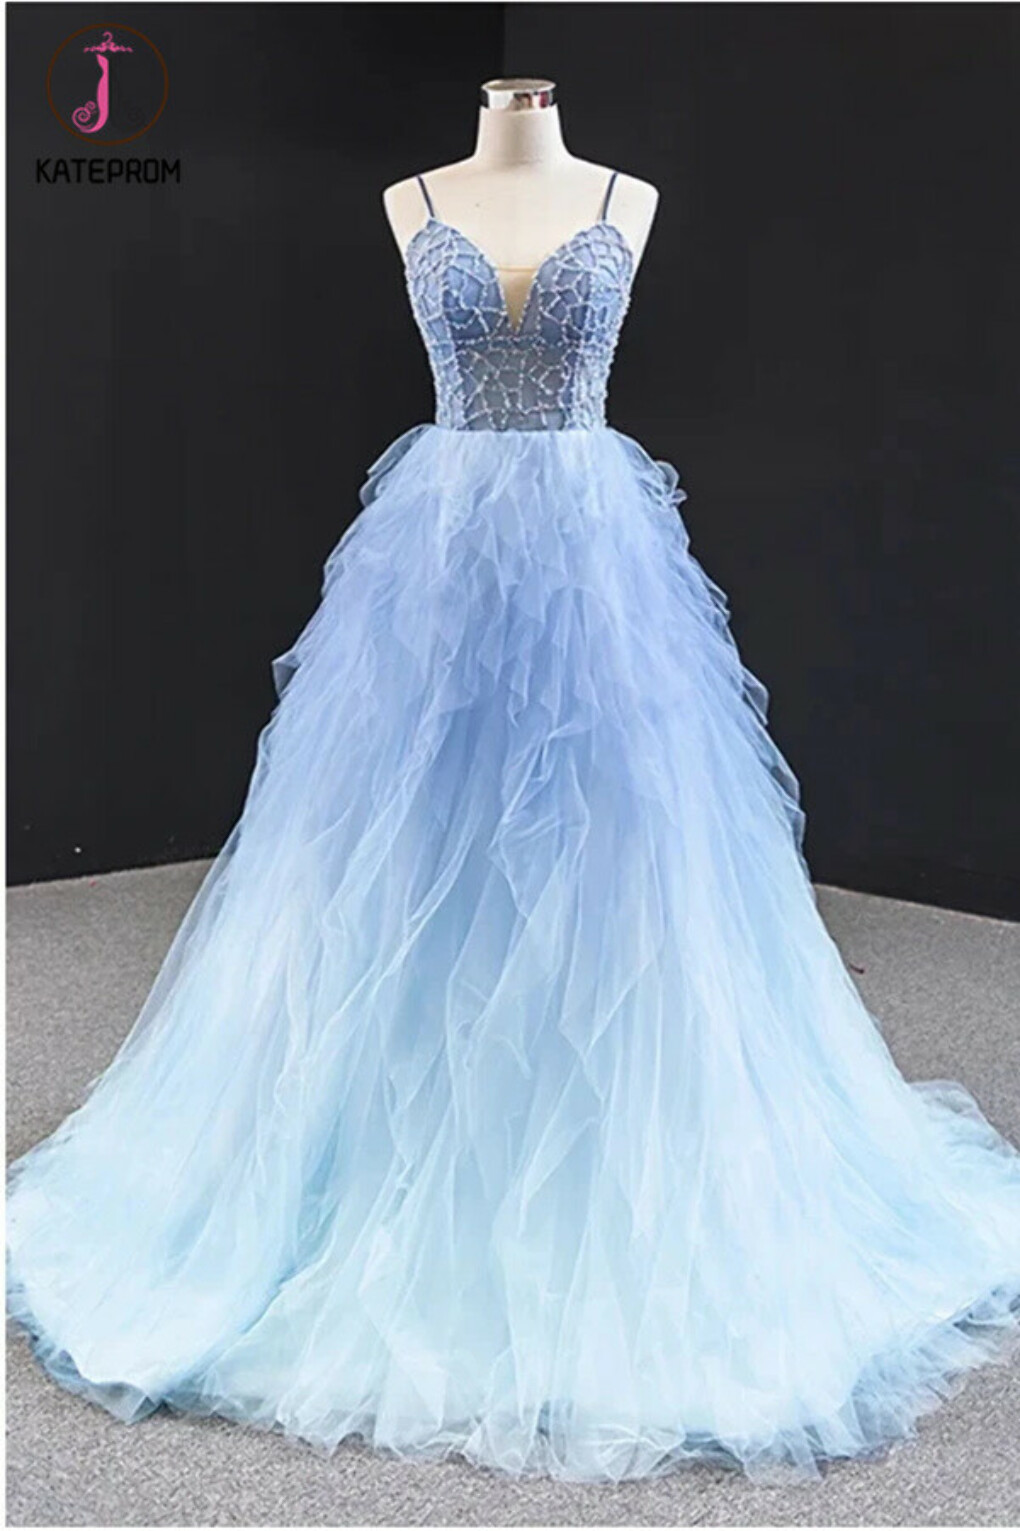 Kateprom Cheap Long Light Blue Tulle Beaded Open Back Ruffles Prom Dress online KPP1324